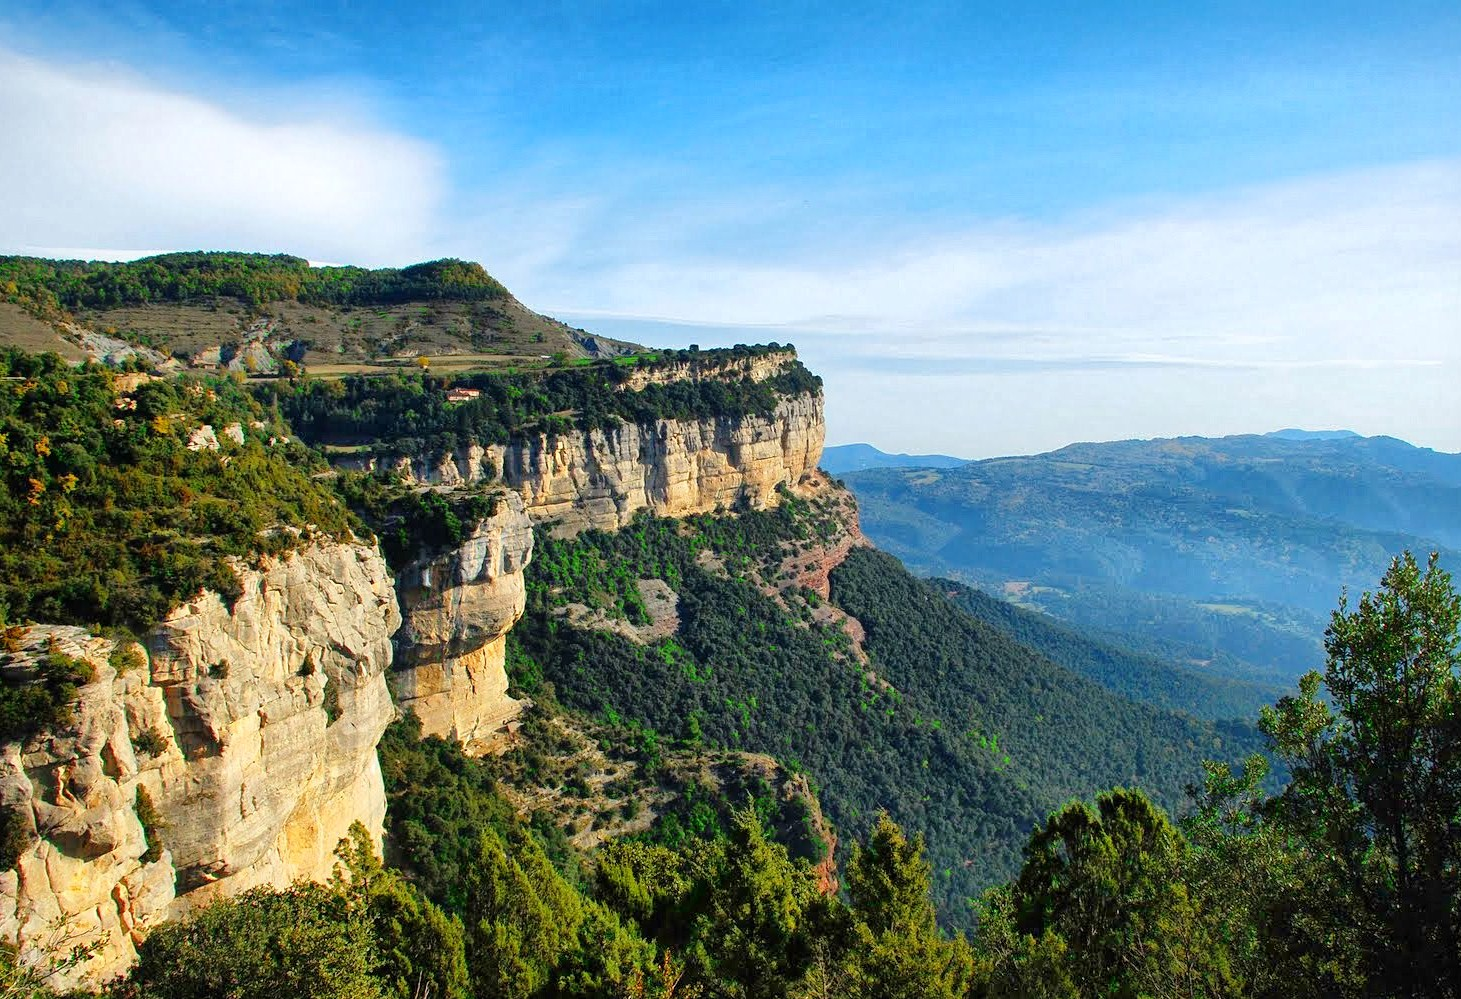 From barcelona 9 hour rural catalonia hiking experience and rupit medieval town - Casa rural en rupit i pruit ...